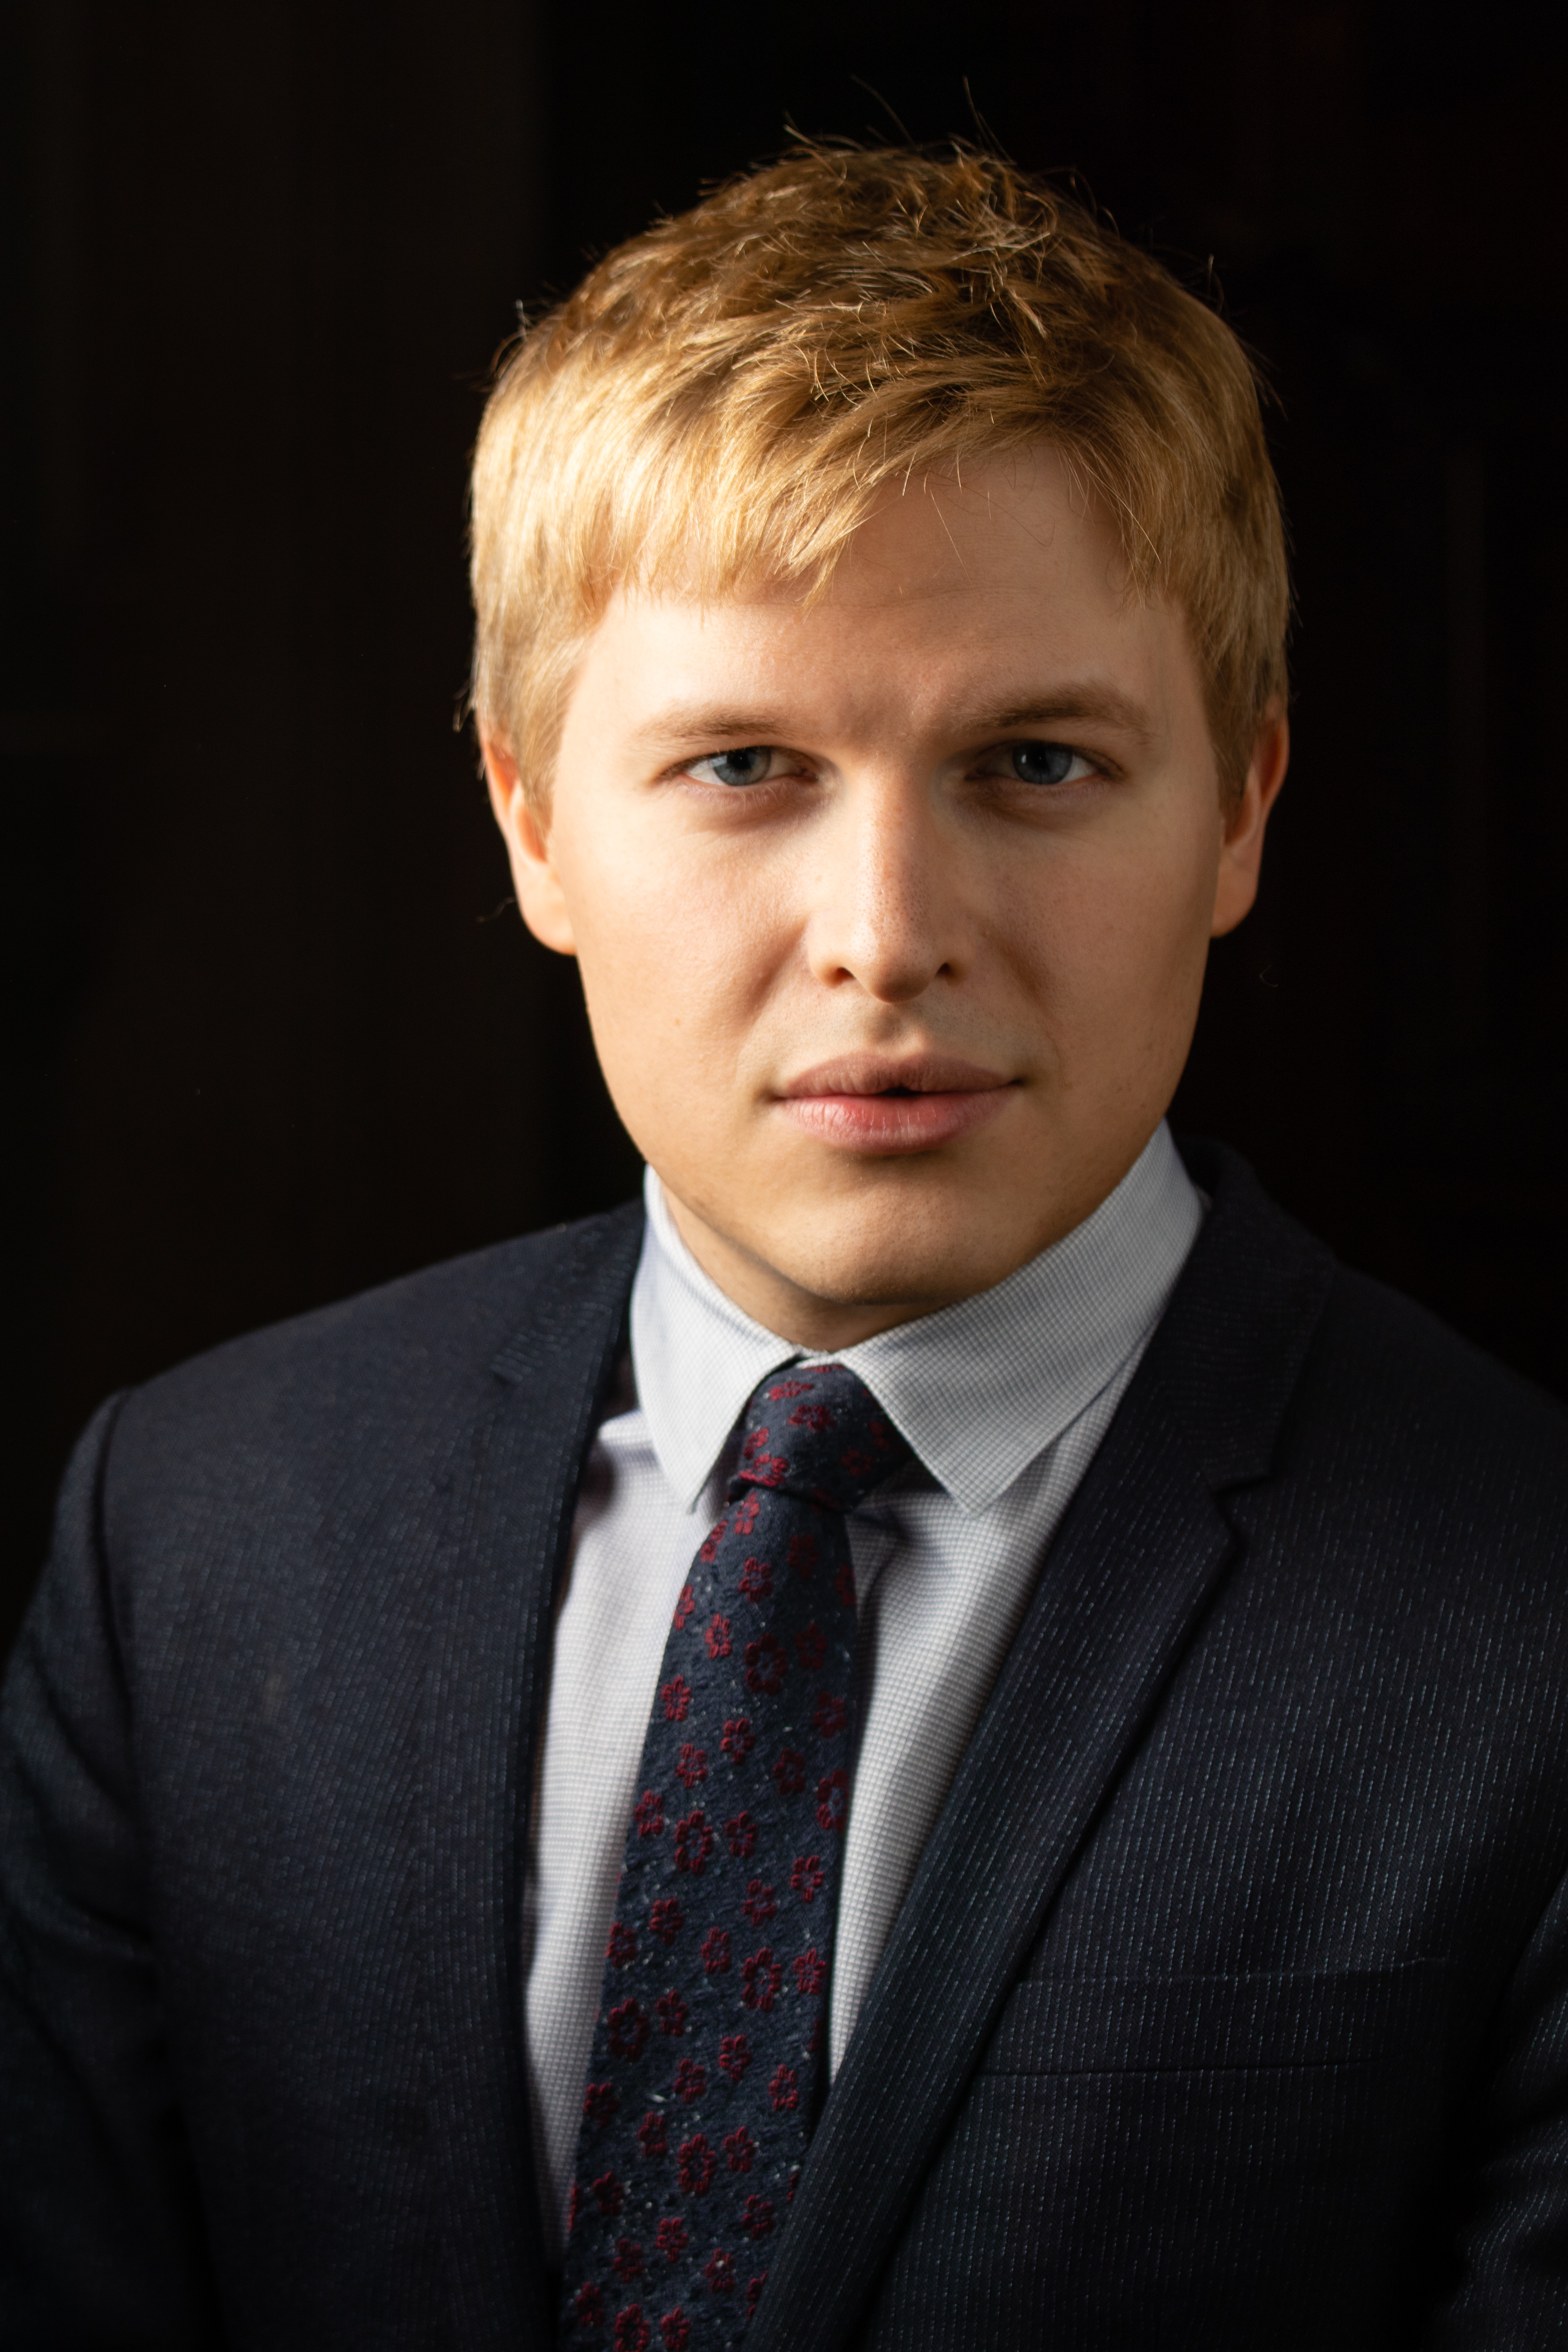 The 30-year old son of father Woody Allen and mother Mia Farrow Ronan Farrow in 2018 photo. Ronan Farrow earned a  million dollar salary - leaving the net worth at 4 million in 2018